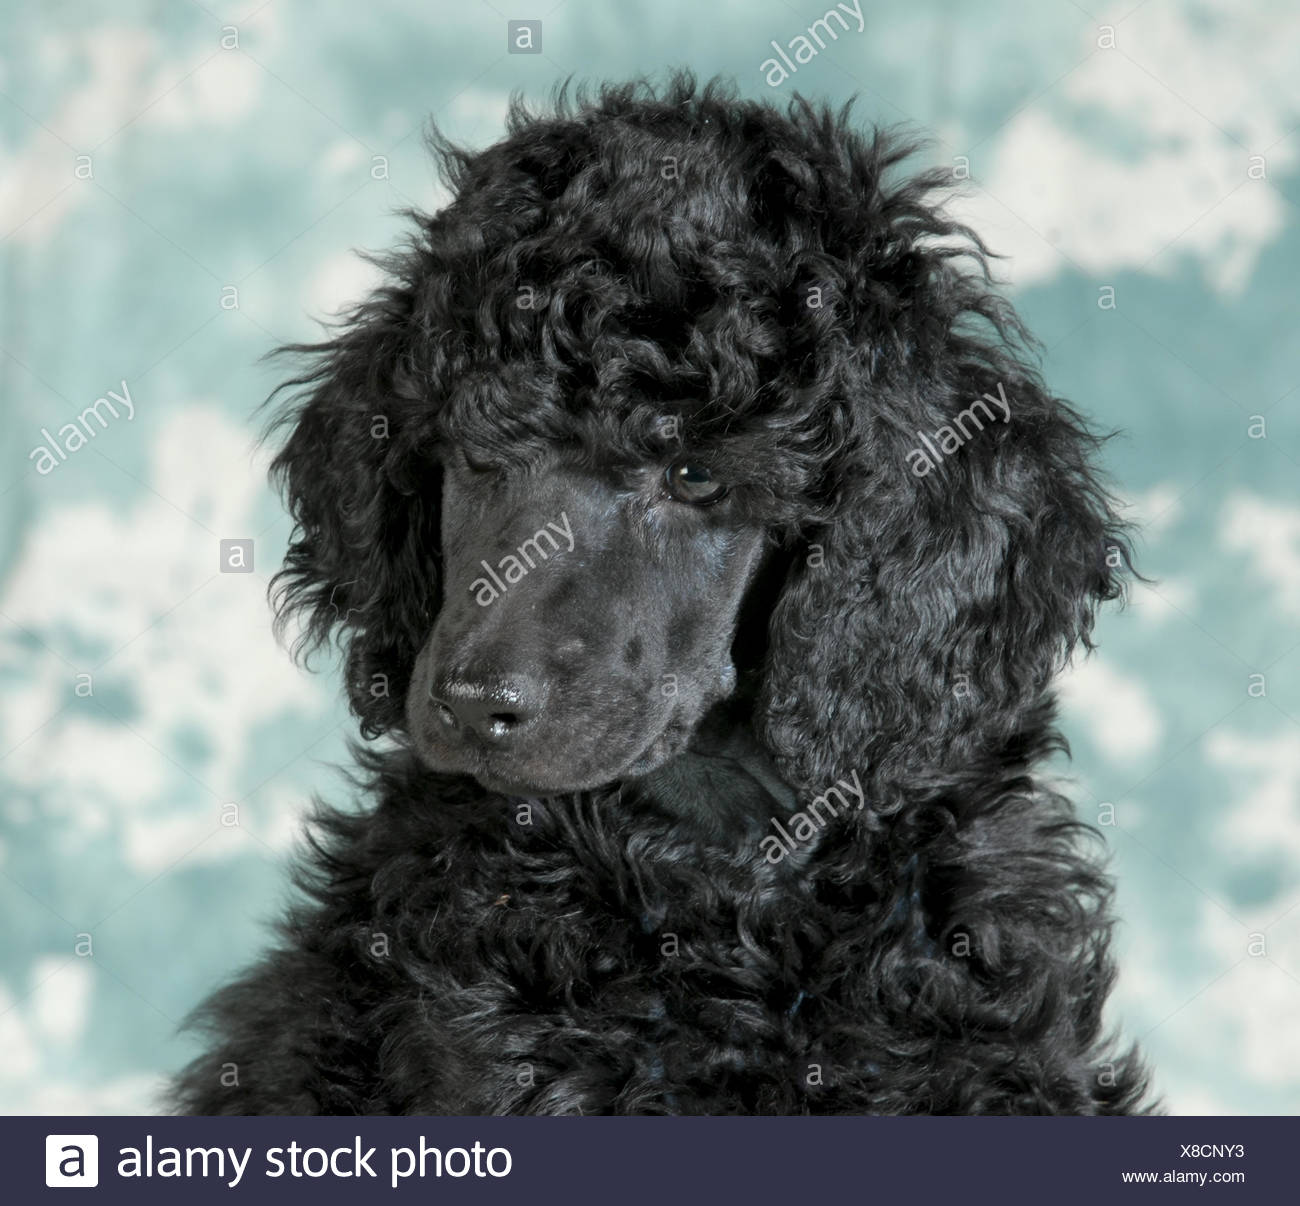 Standard Poodle Puppy Portrait 8 Weeks Old Stock Photo